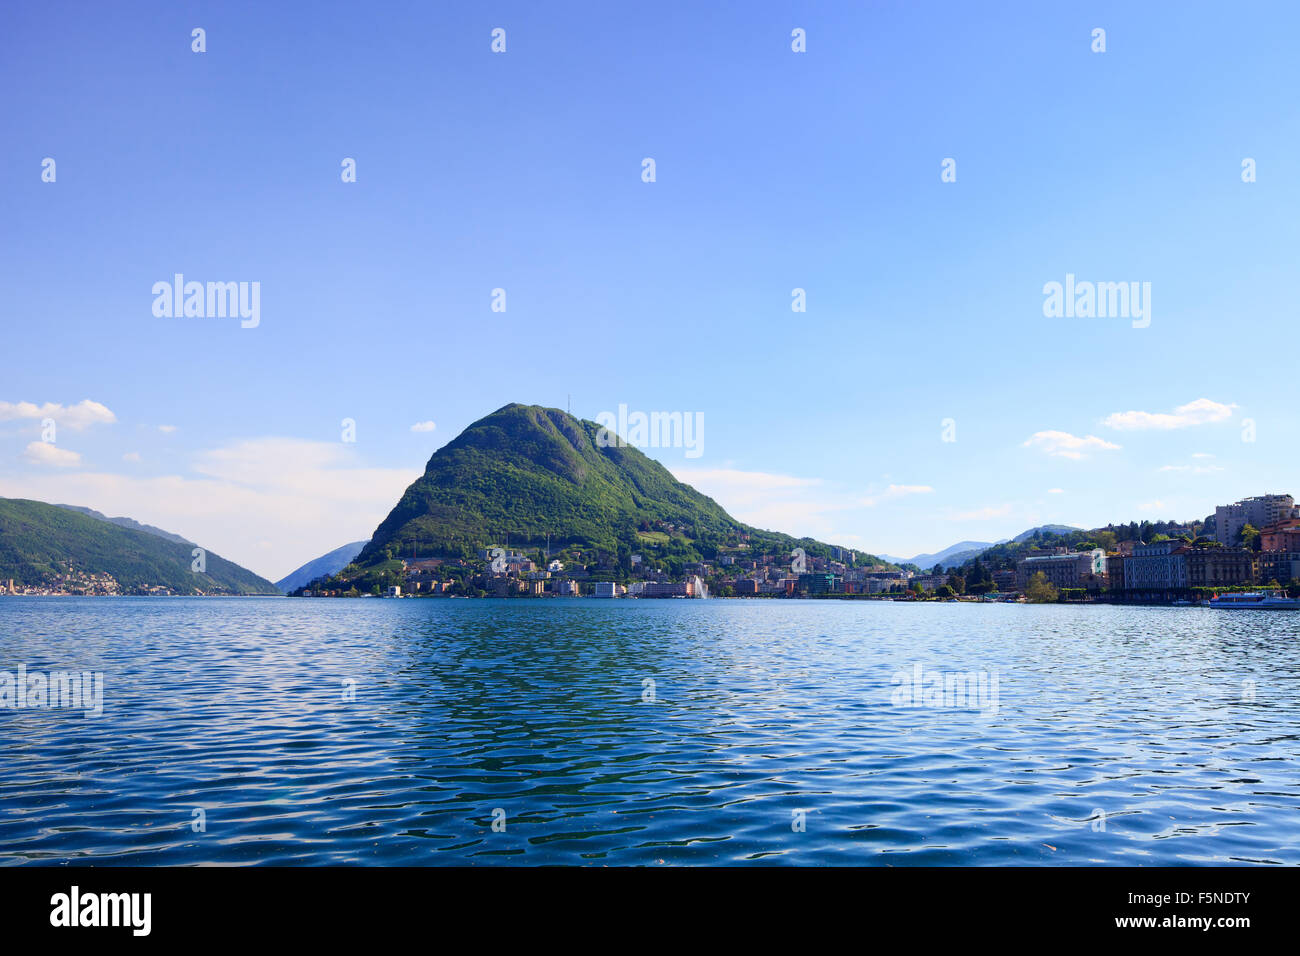 Lugano lake and mountains landscape. City, water, blue sky and mountains. Ticino, Swiss or Switzerland, Europe. Stock Photo